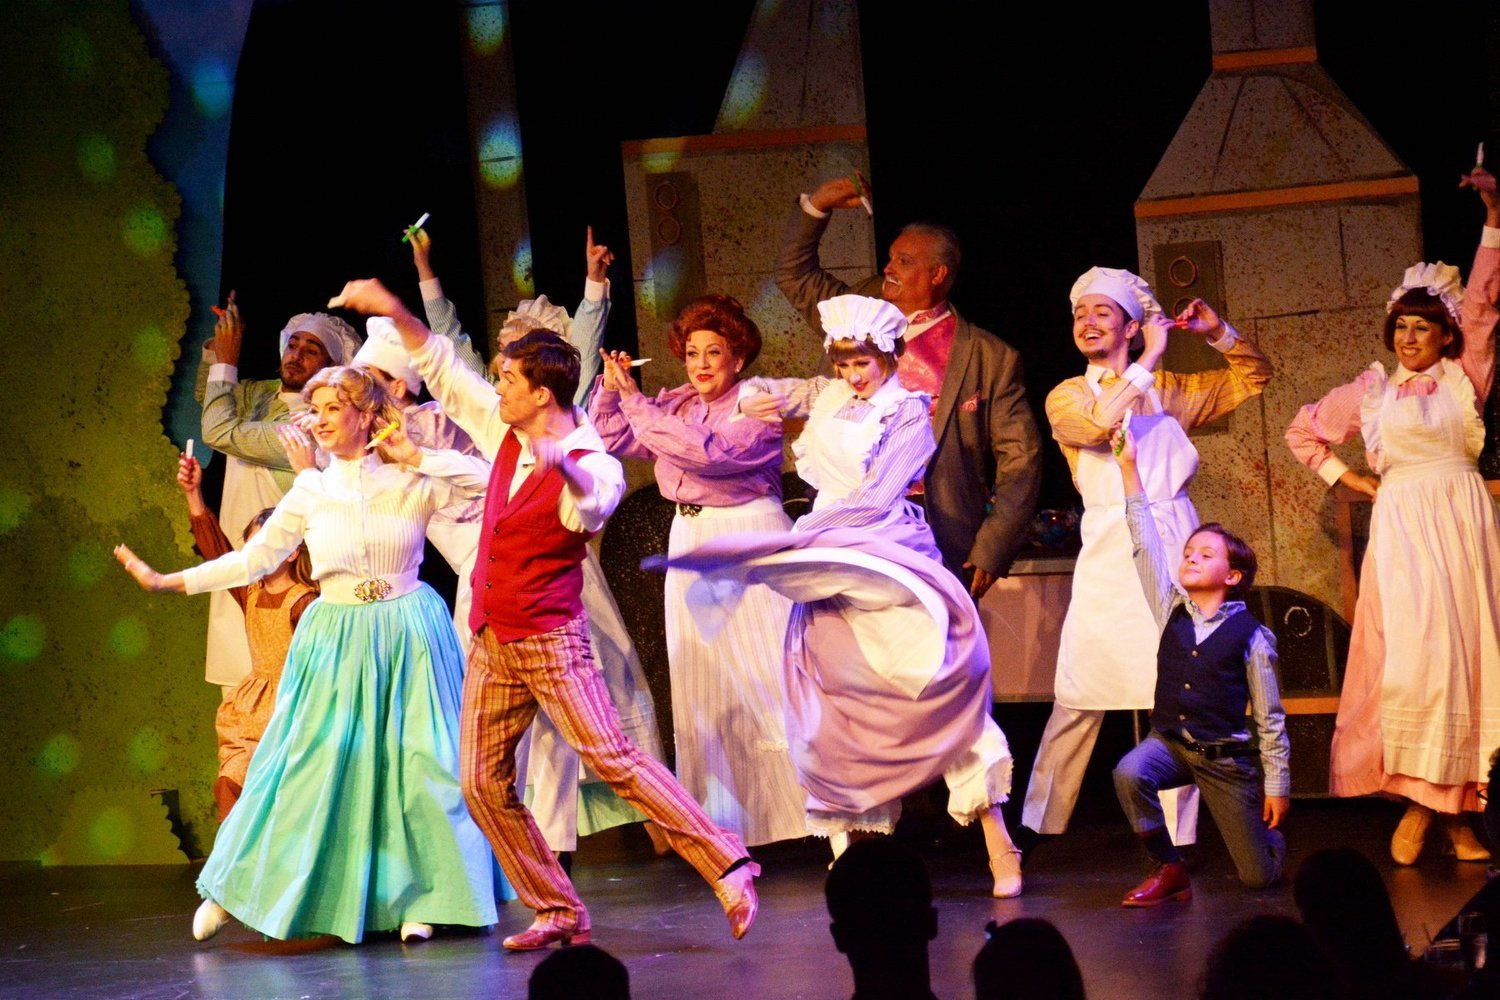 BWW Review: CHITTY CHITTY BANG BANG at Alhambra Theatre And Dining